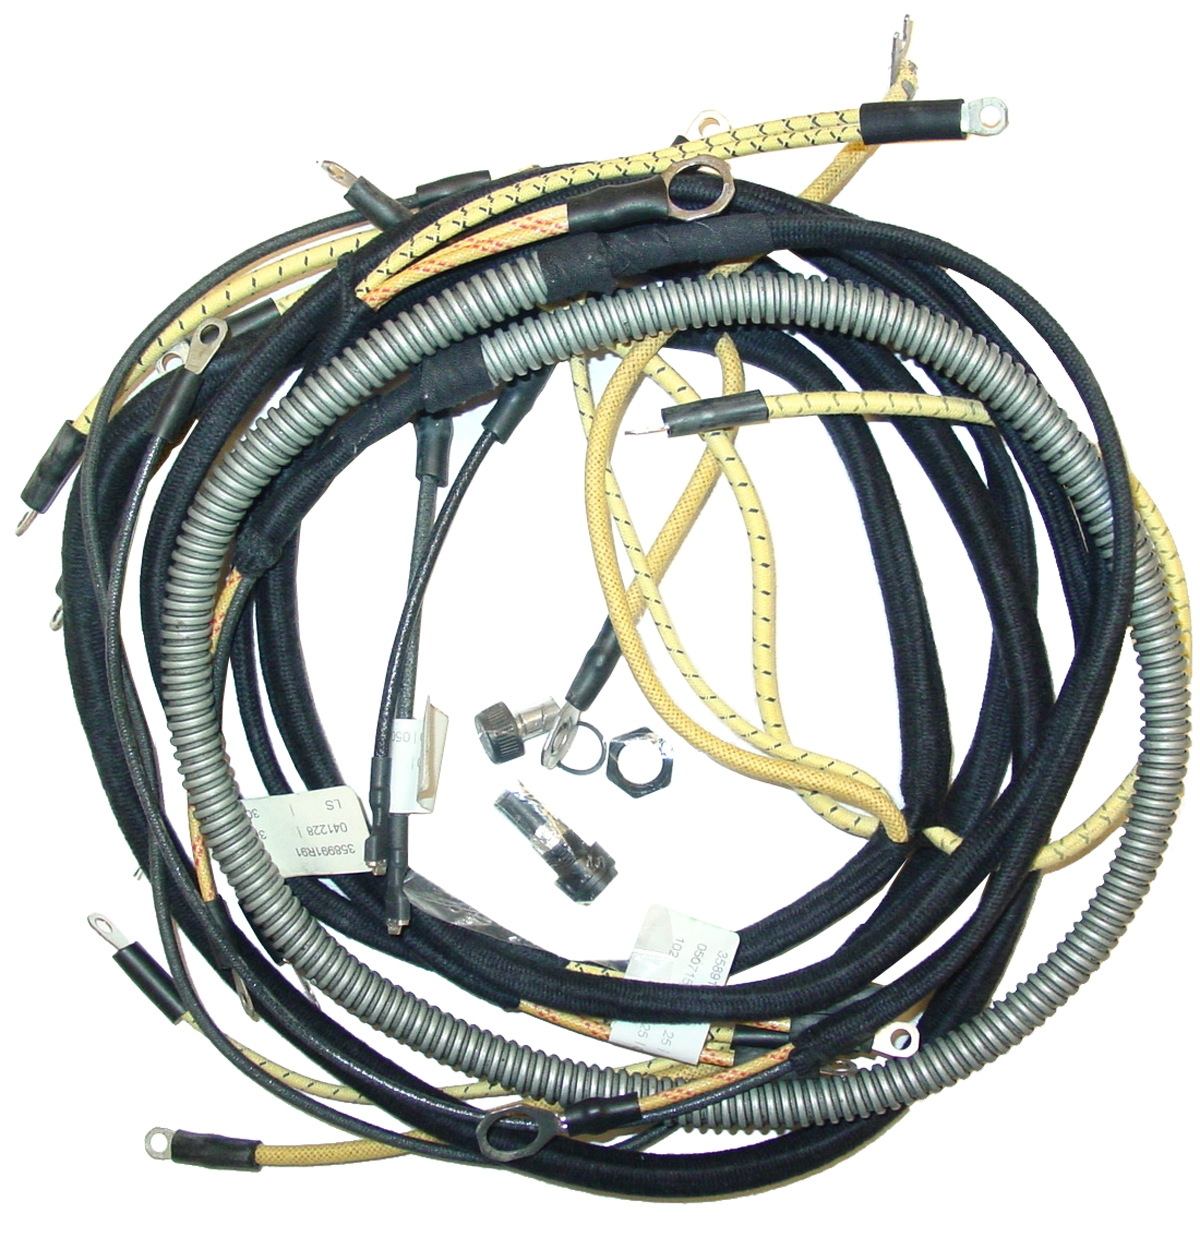 IHS488 wiring harness case ih parts case ih tractor parts case 5130 wiring diagram at reclaimingppi.co